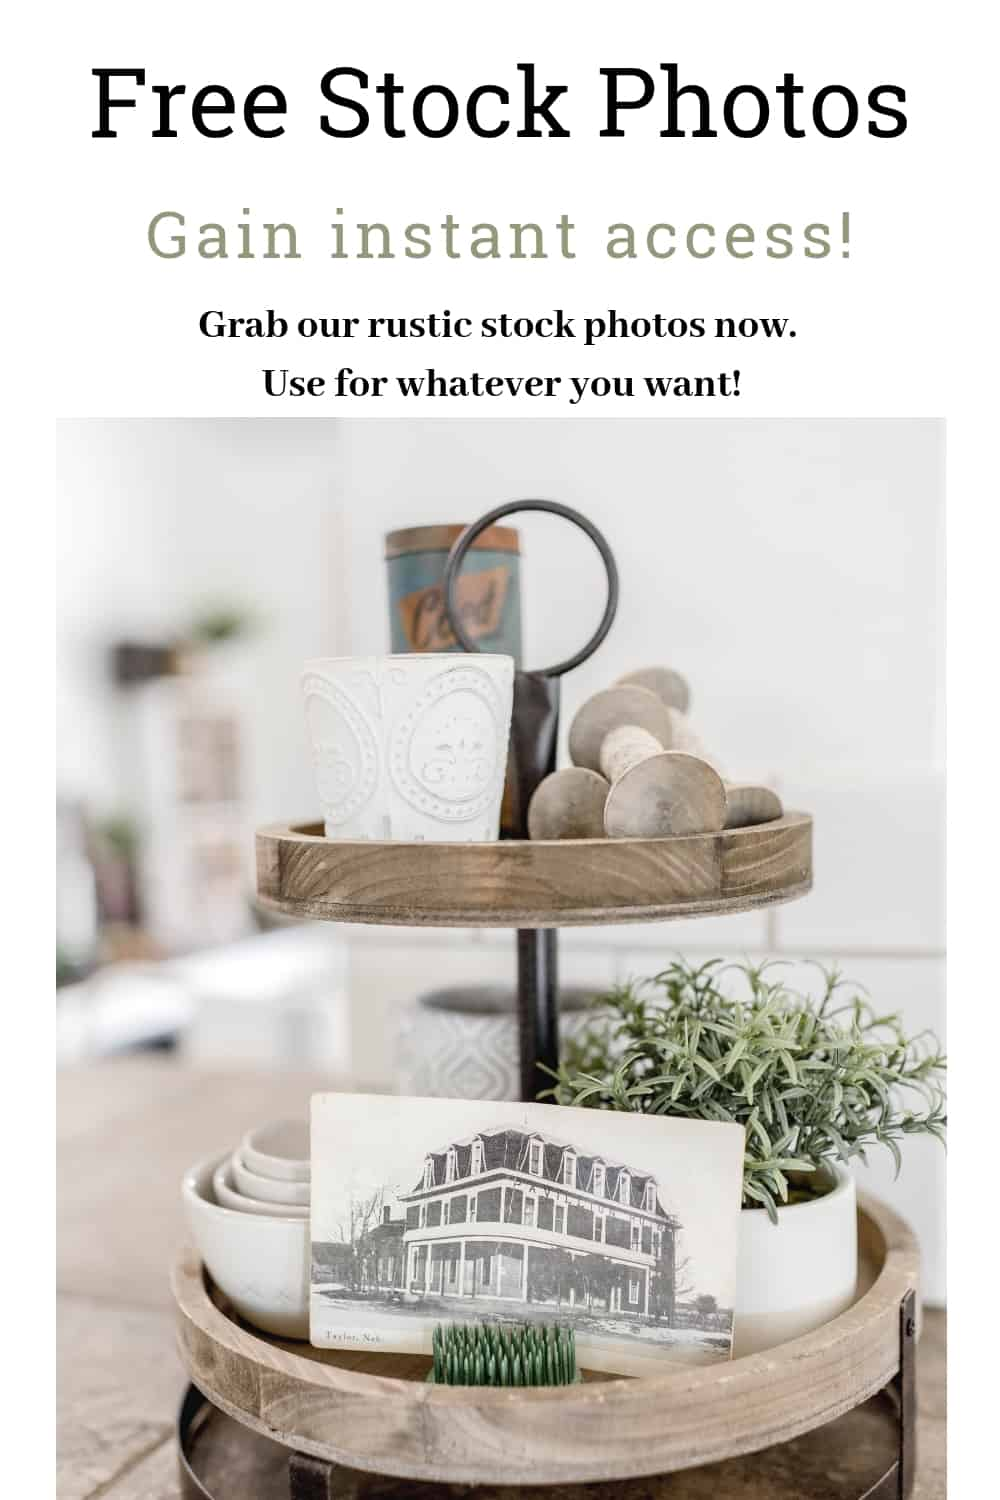 rustic stock photos for businesses